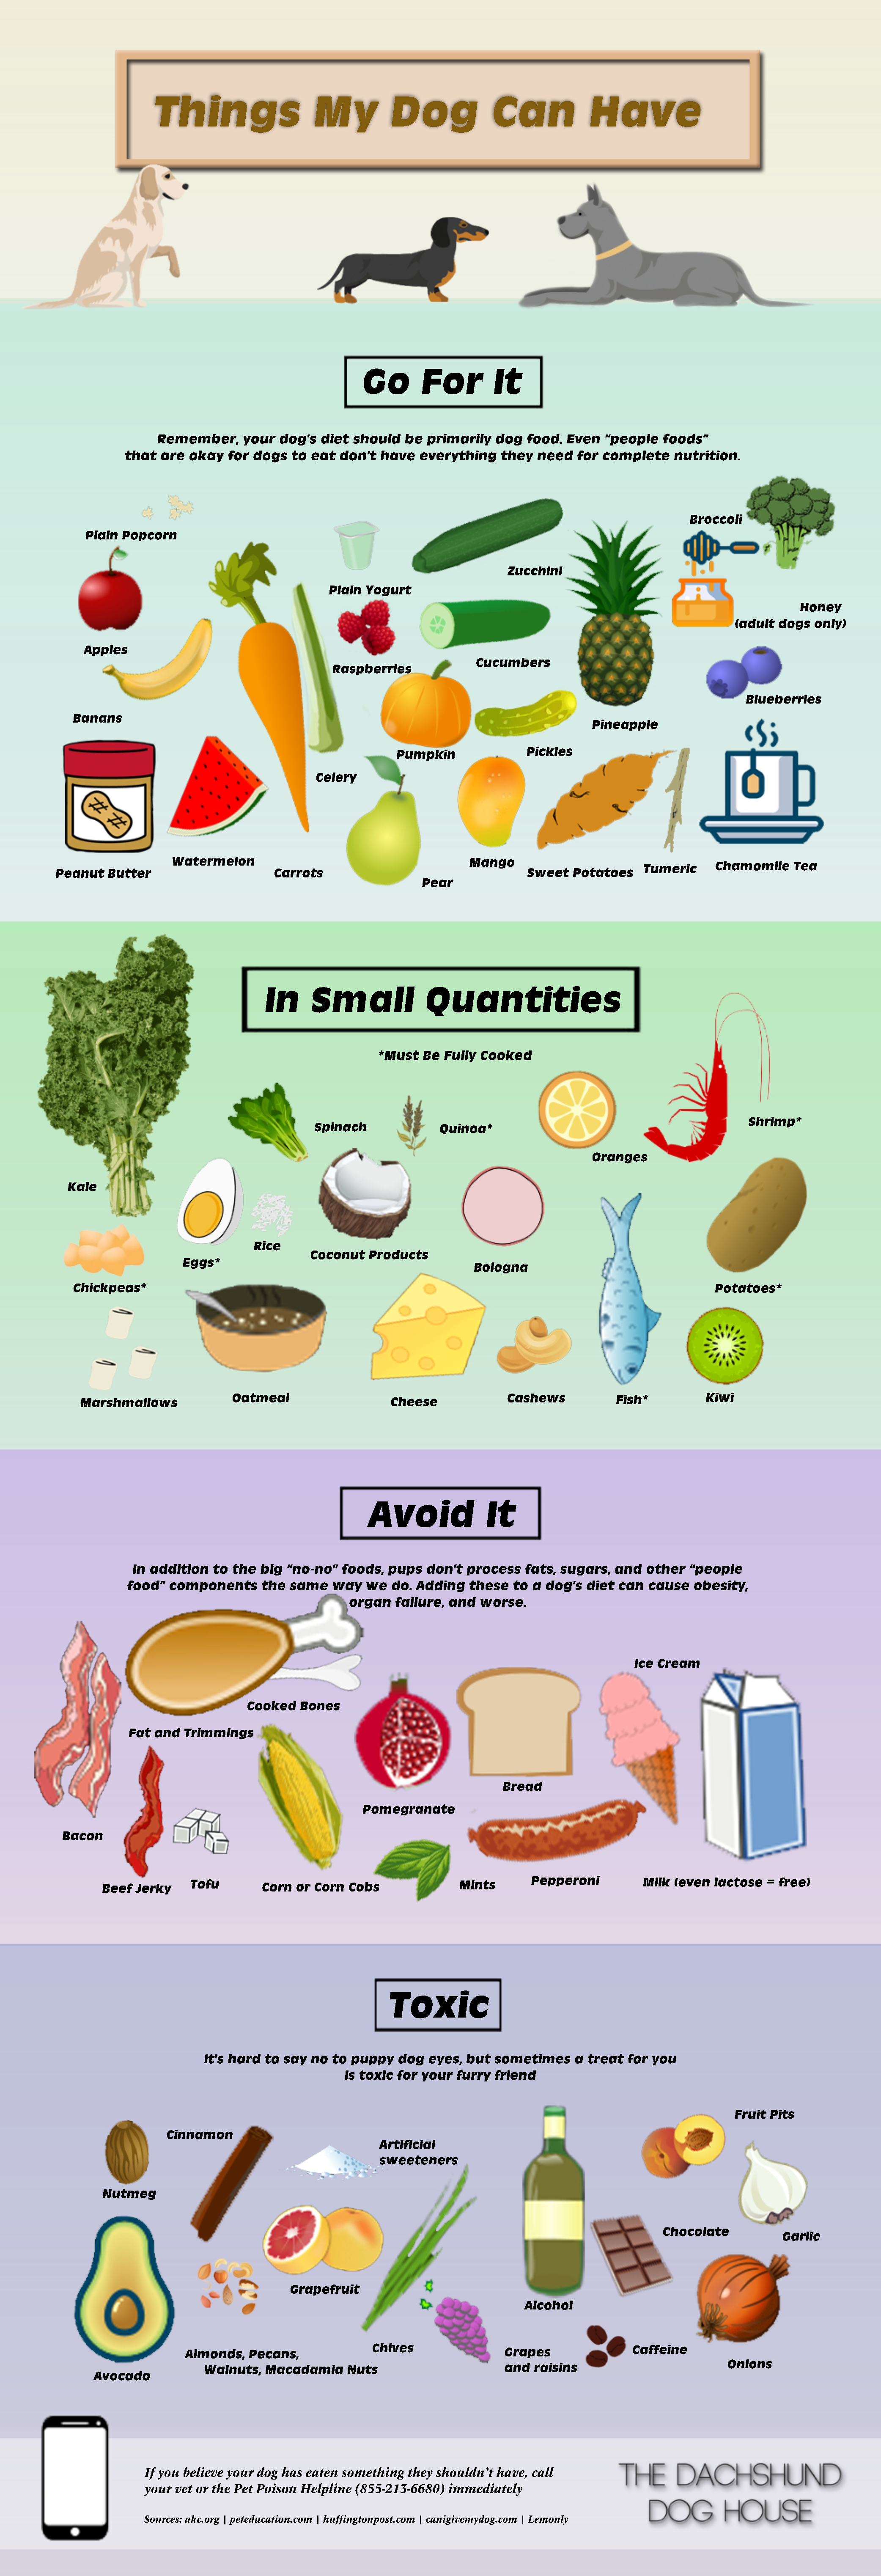 Can My Dog Have Infographic On Feeding Your Pup People Food Click For This And More Dog Info Do Human Food For Dogs Dog Food Recipes Foods Dogs Can Eat